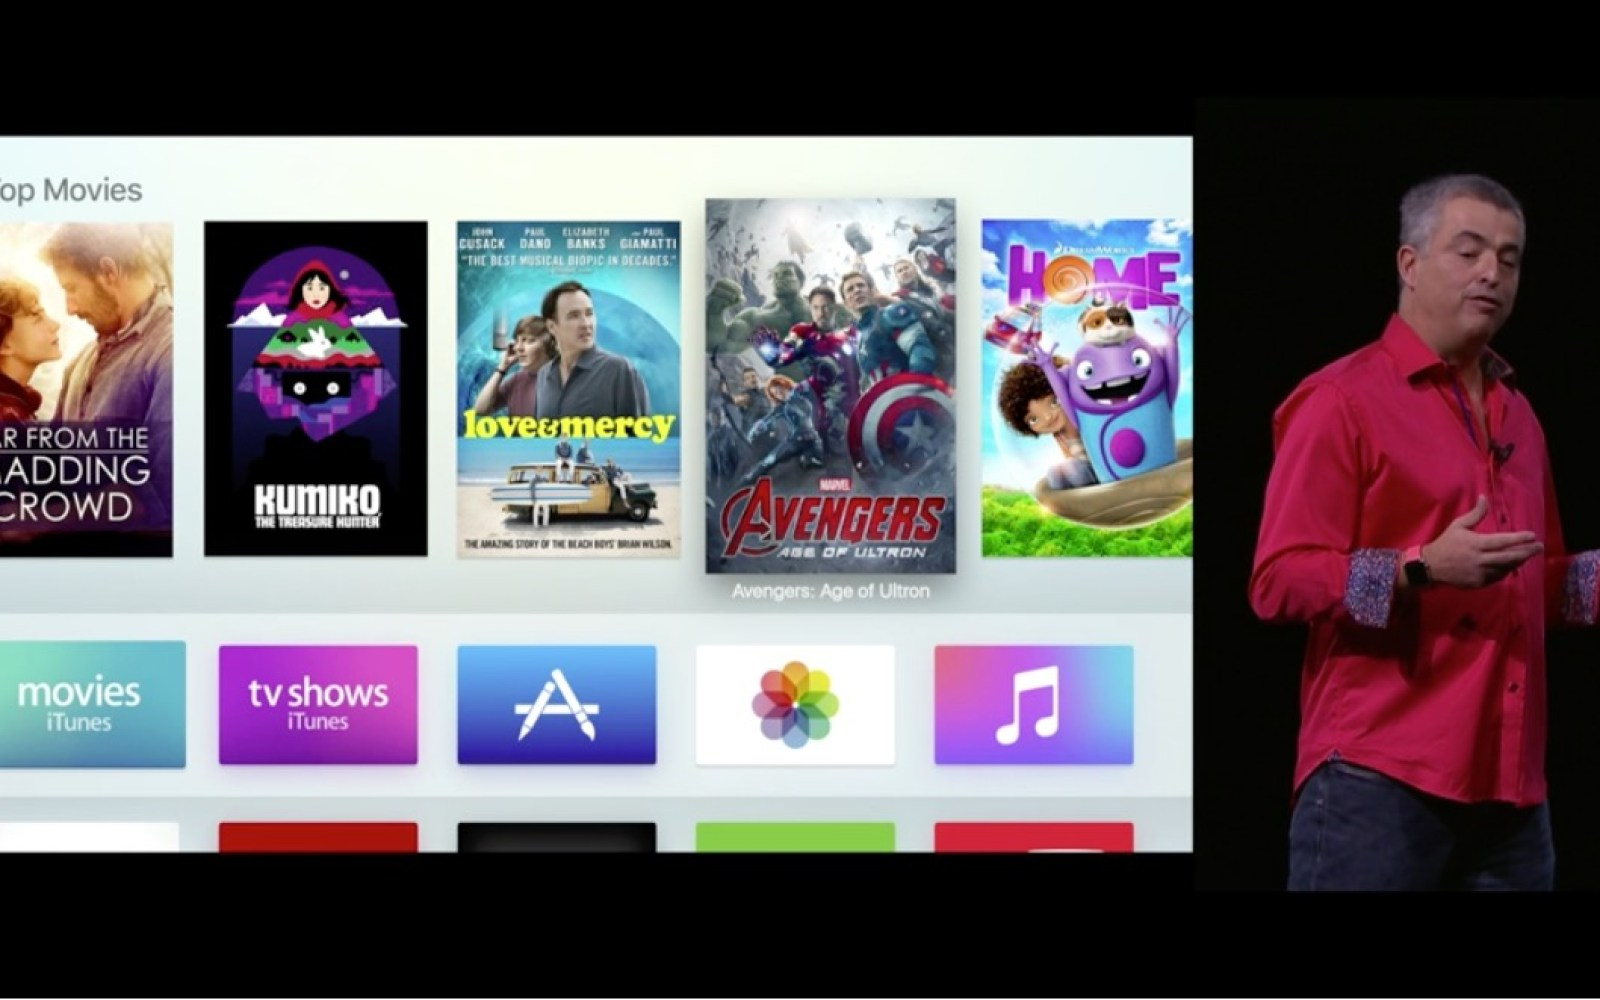 Tim Cook: Apple will offer an Apple TV API to open up universal search beyond initial launch partners